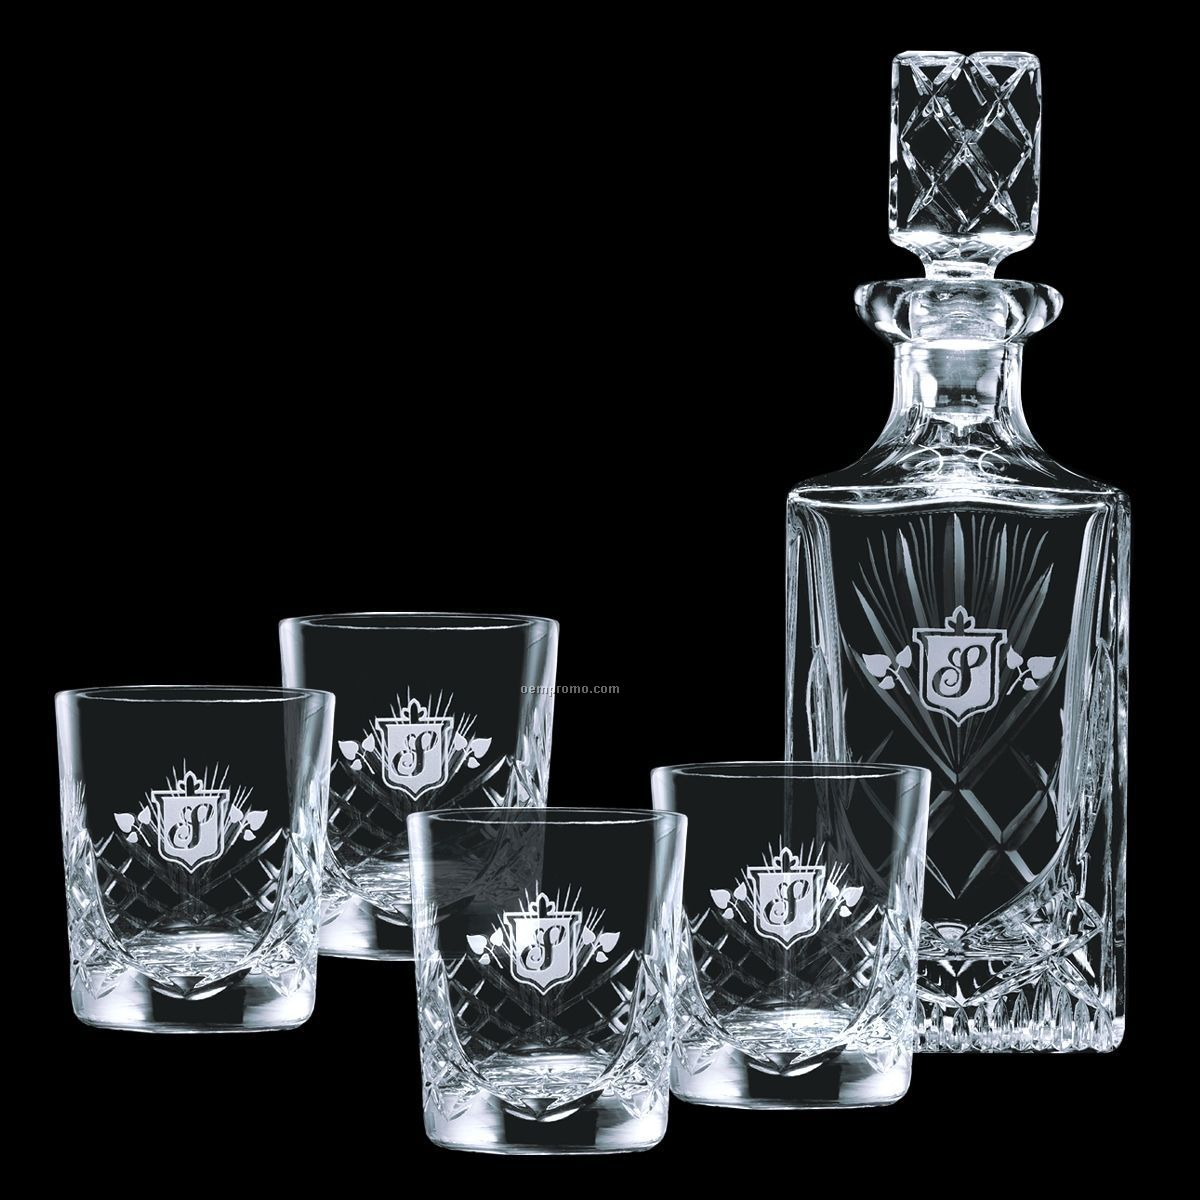 28 Oz. Cavanaugh Crystal Decanter & 4 Double Old Fashioned Glasses